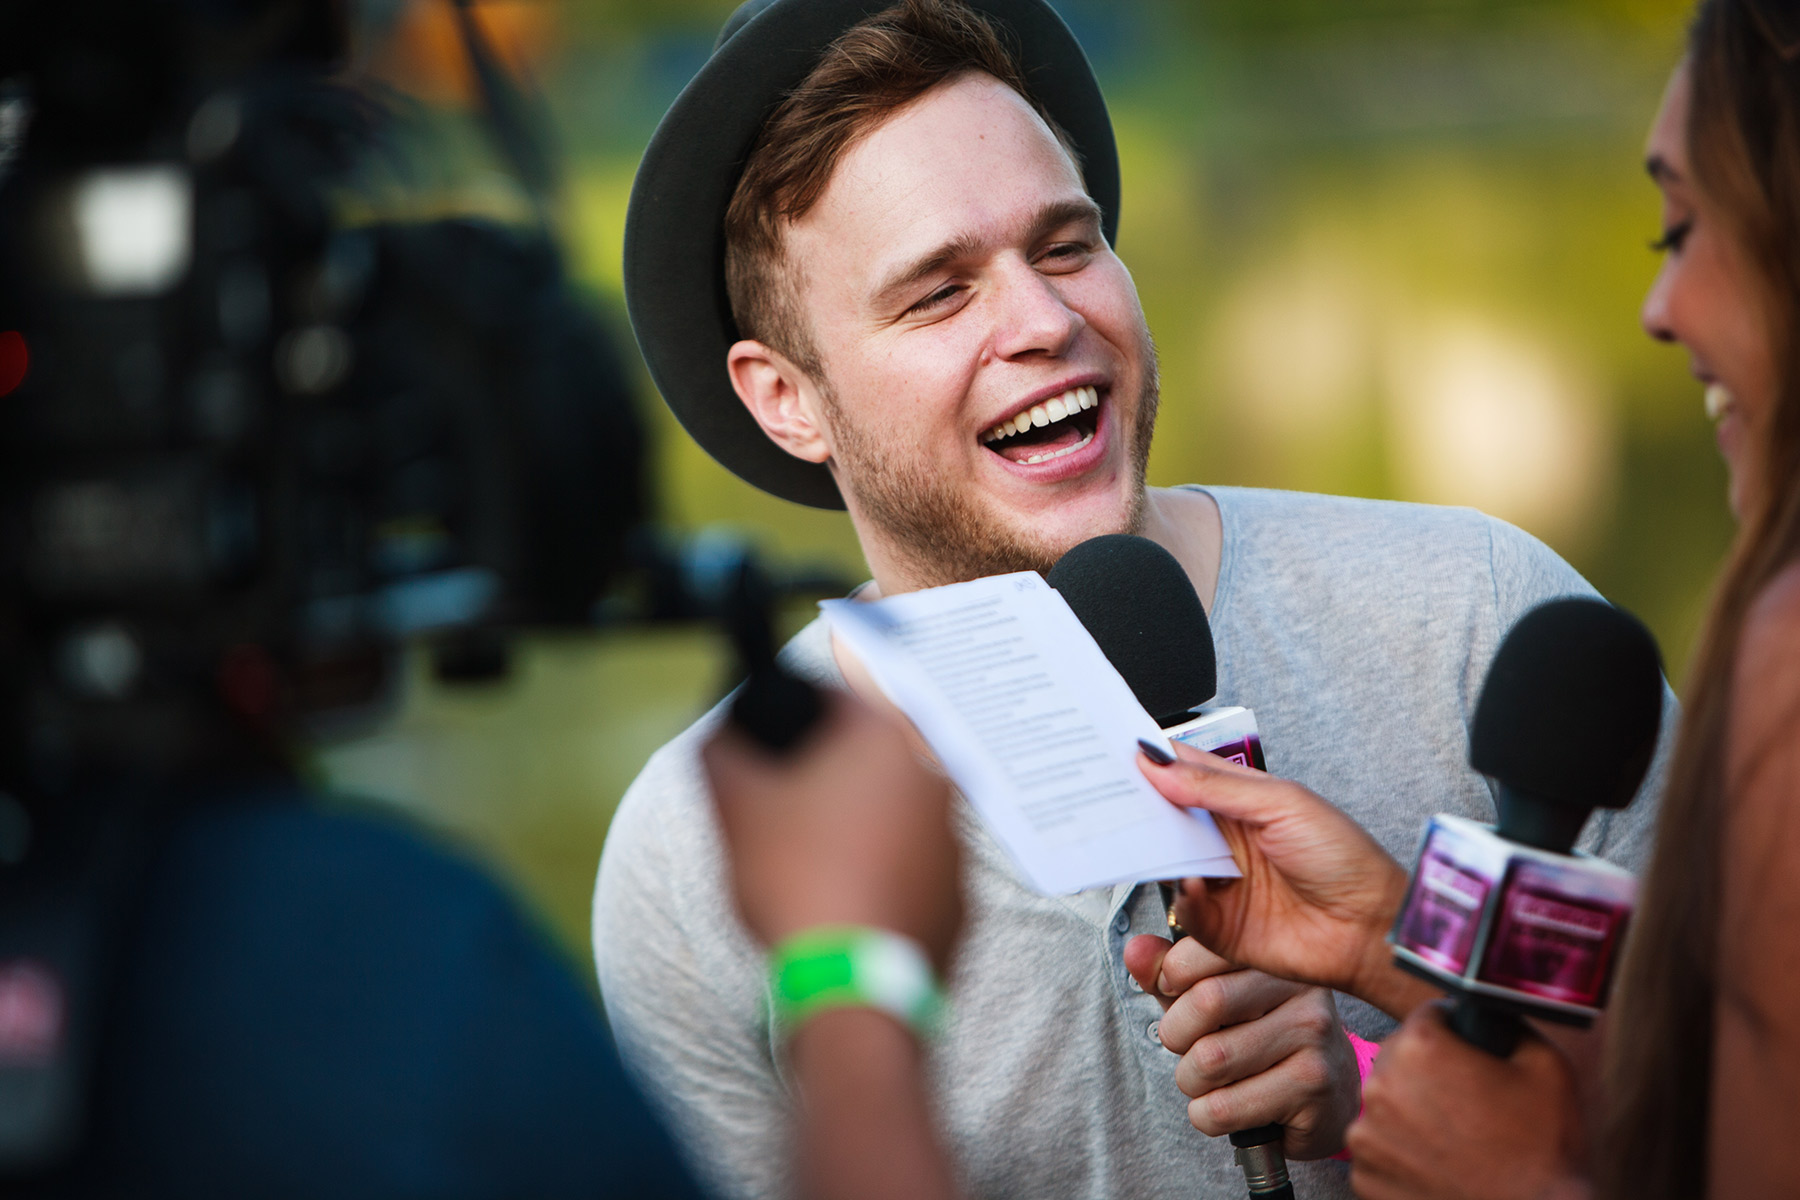 Oli Murs in interview for Channel 4's Box TV